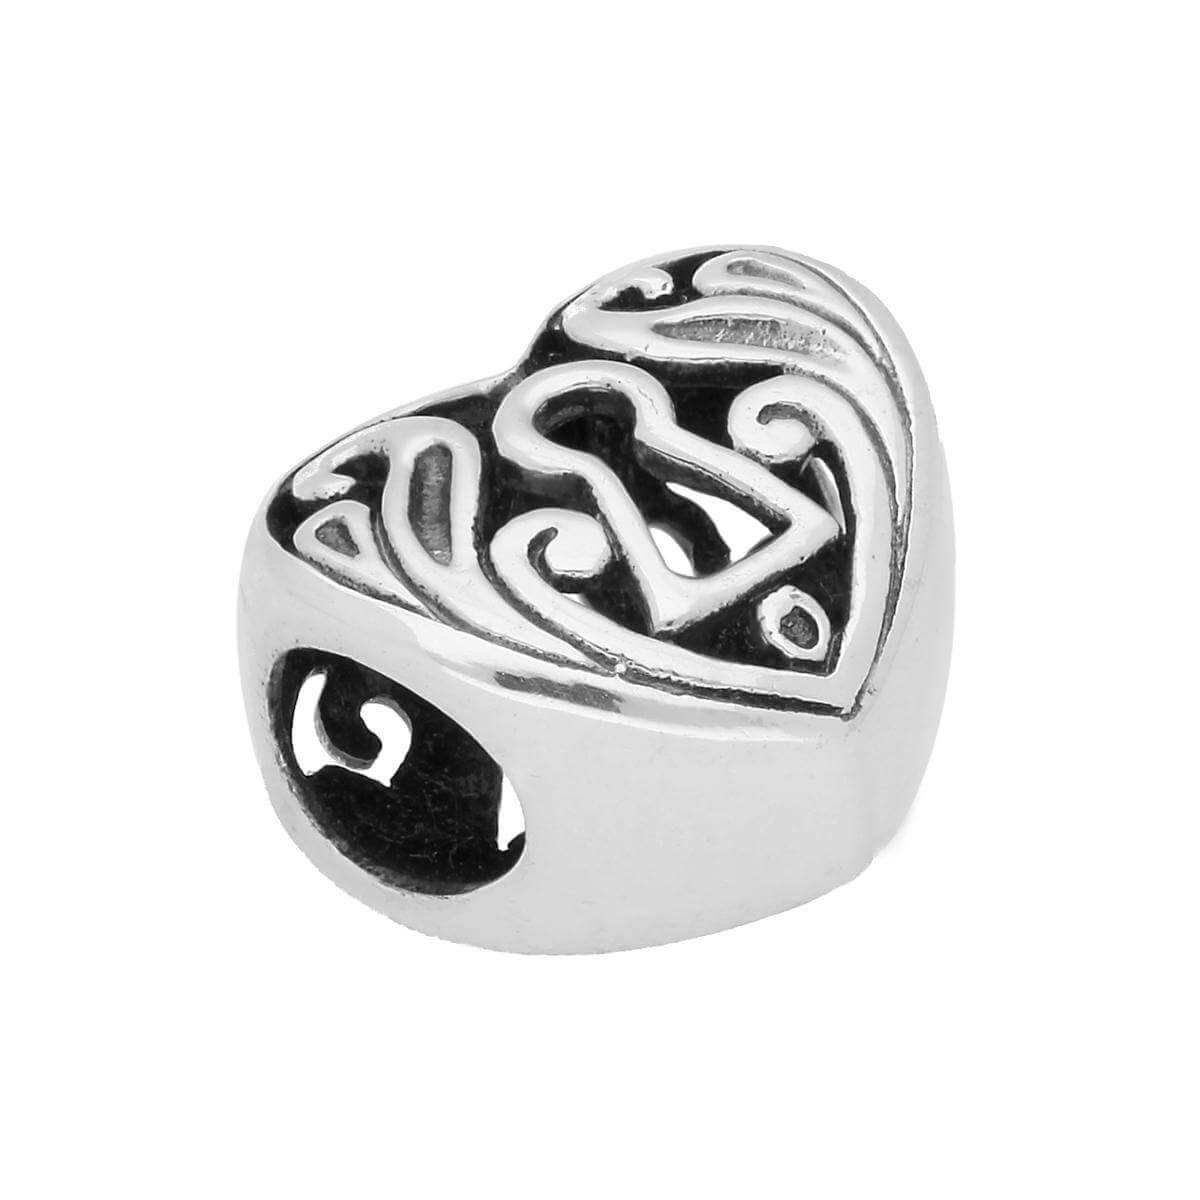 Sterling Silver Keyhole Cut Out Heart Bead Charm